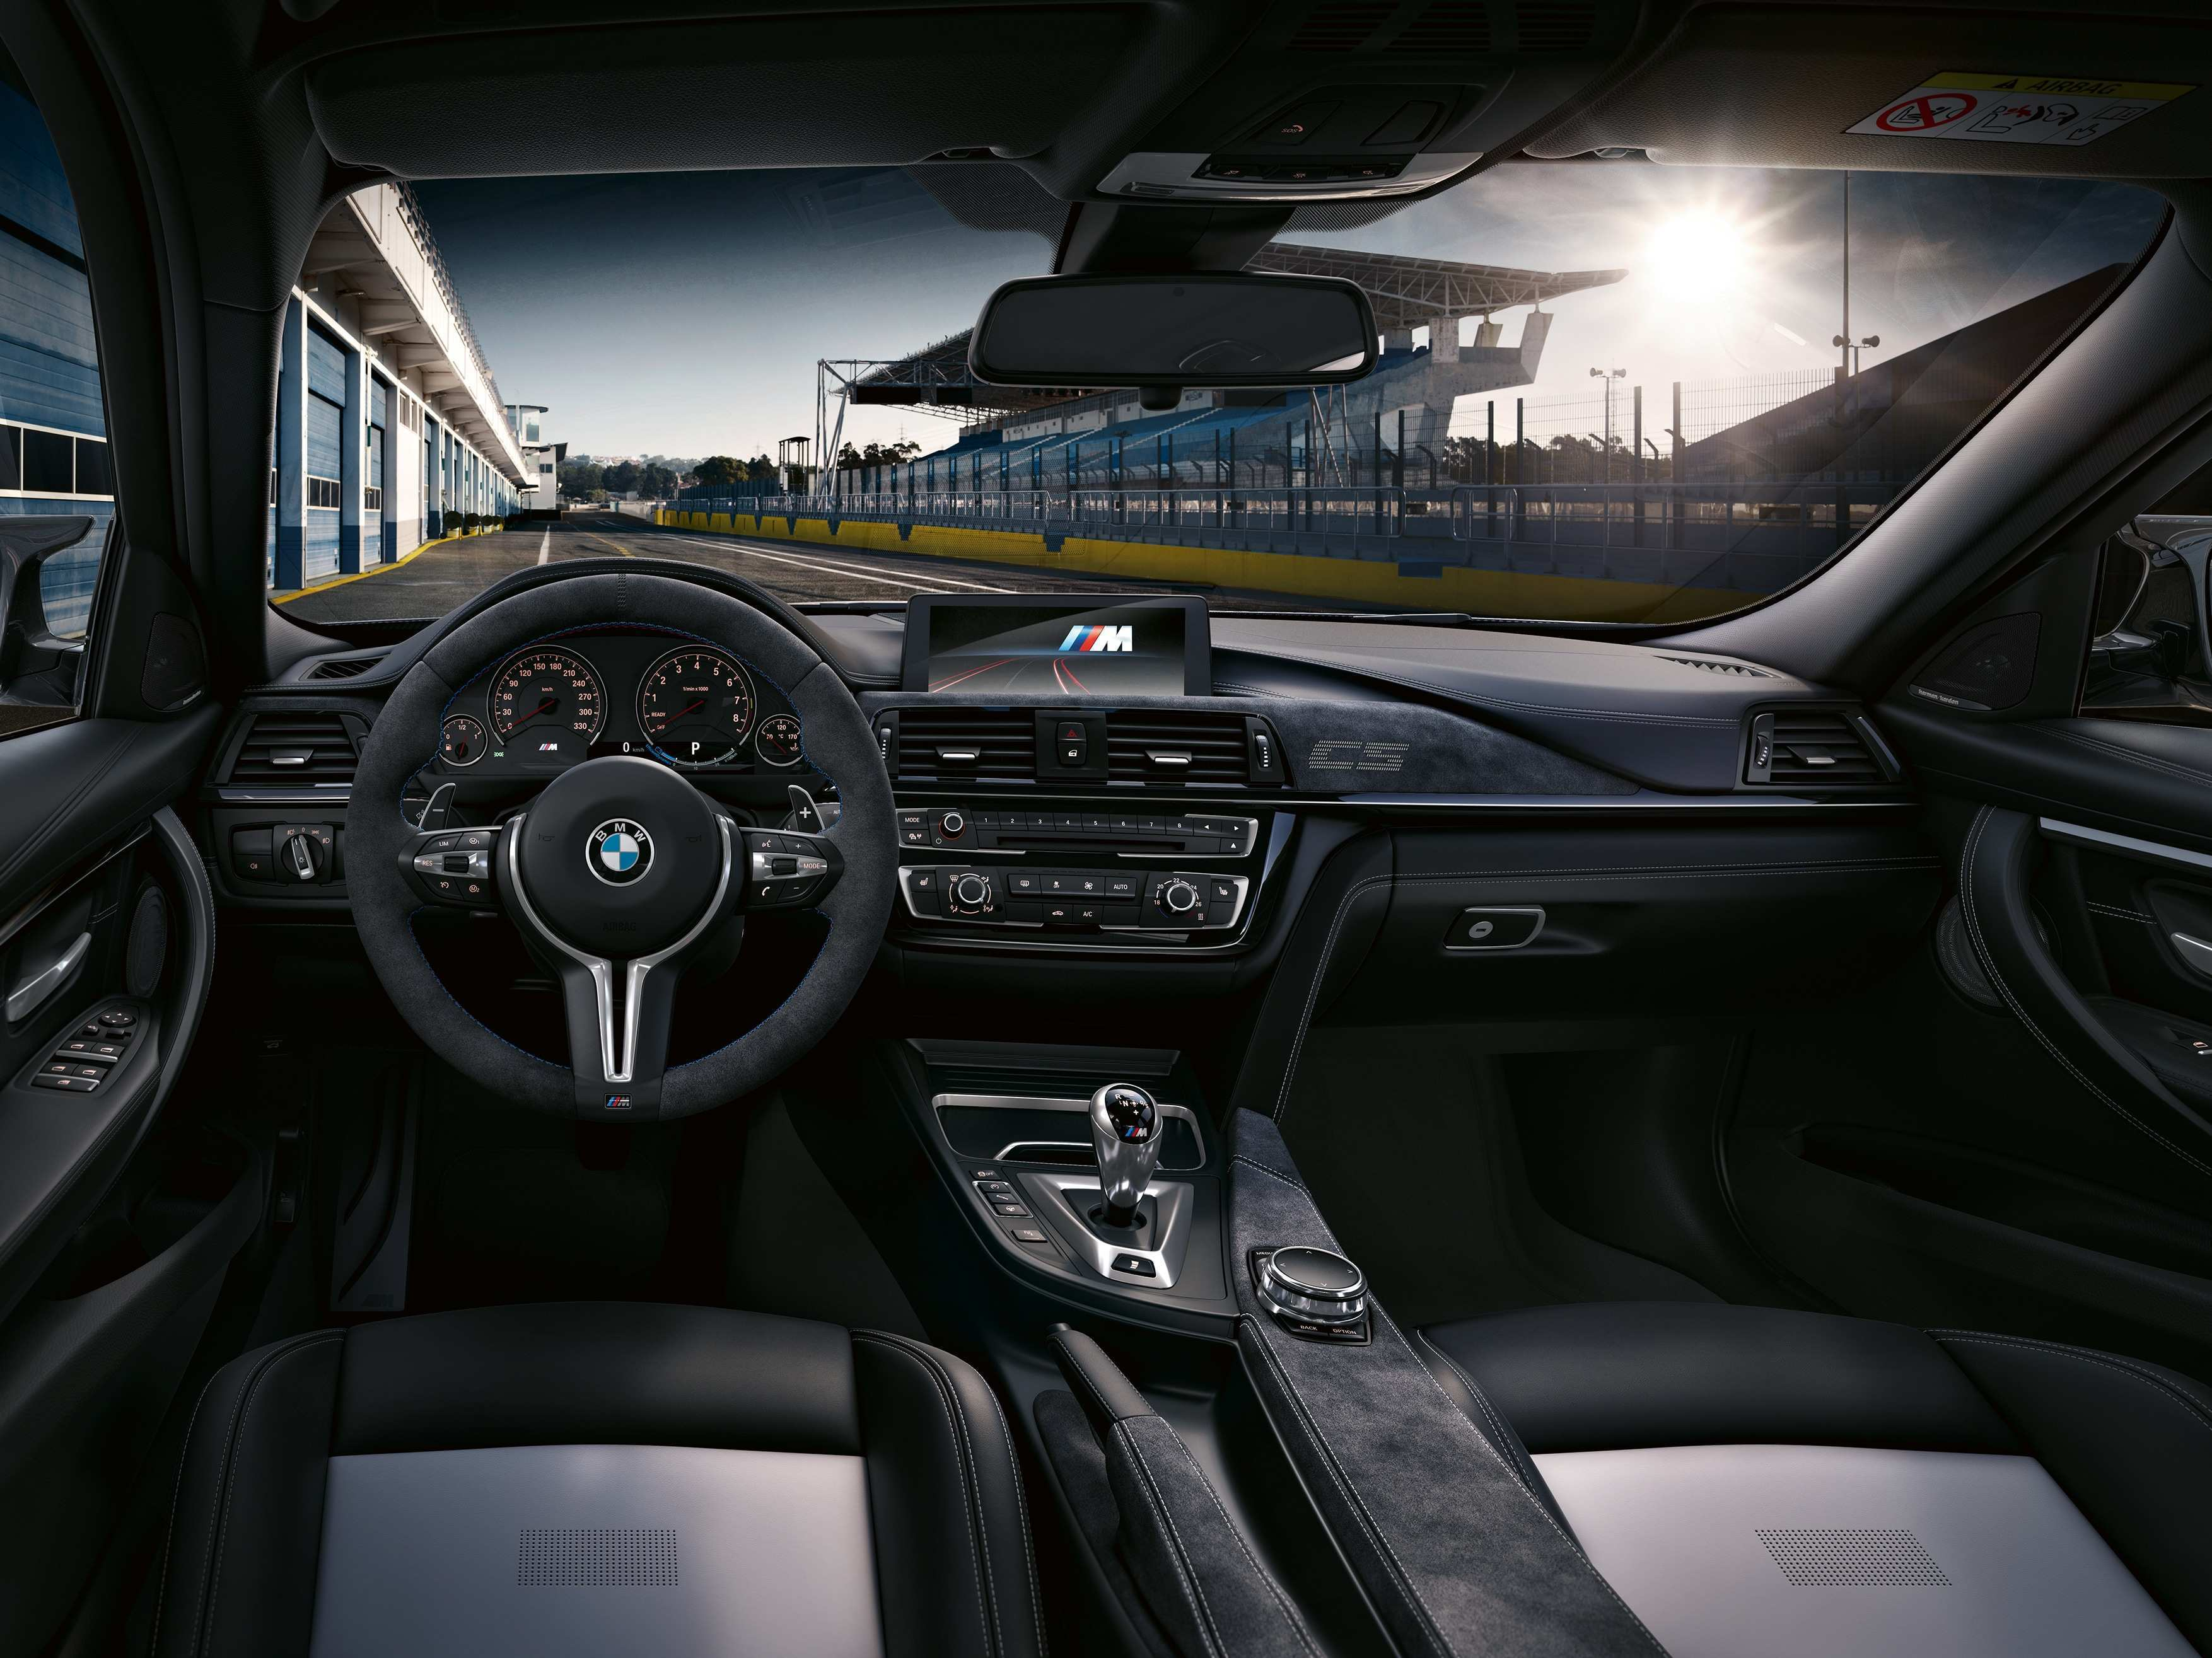 72 The Best 2019 BMW M3 Concept And Review